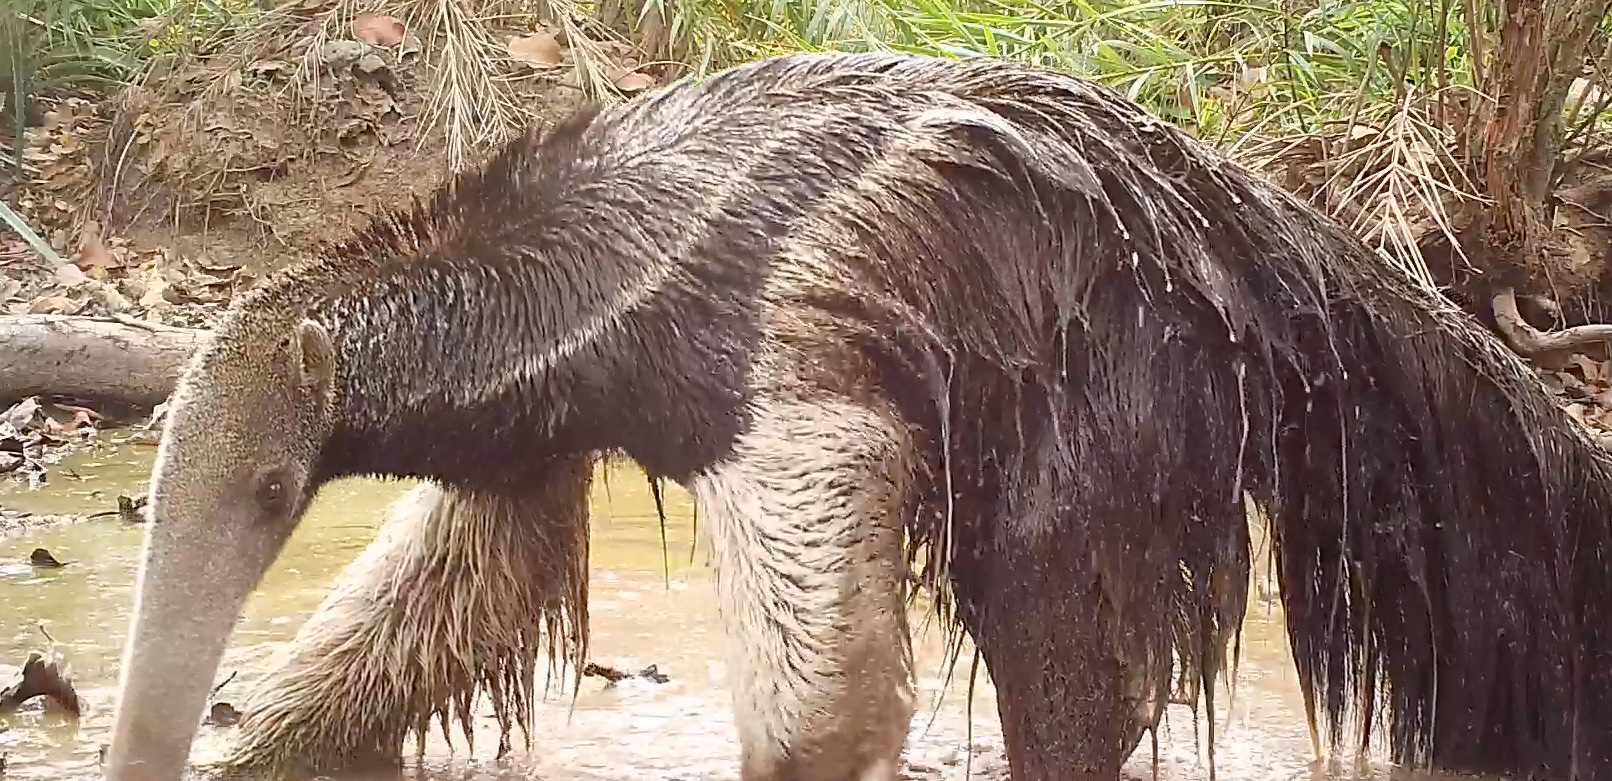 Giant anteater camera trap